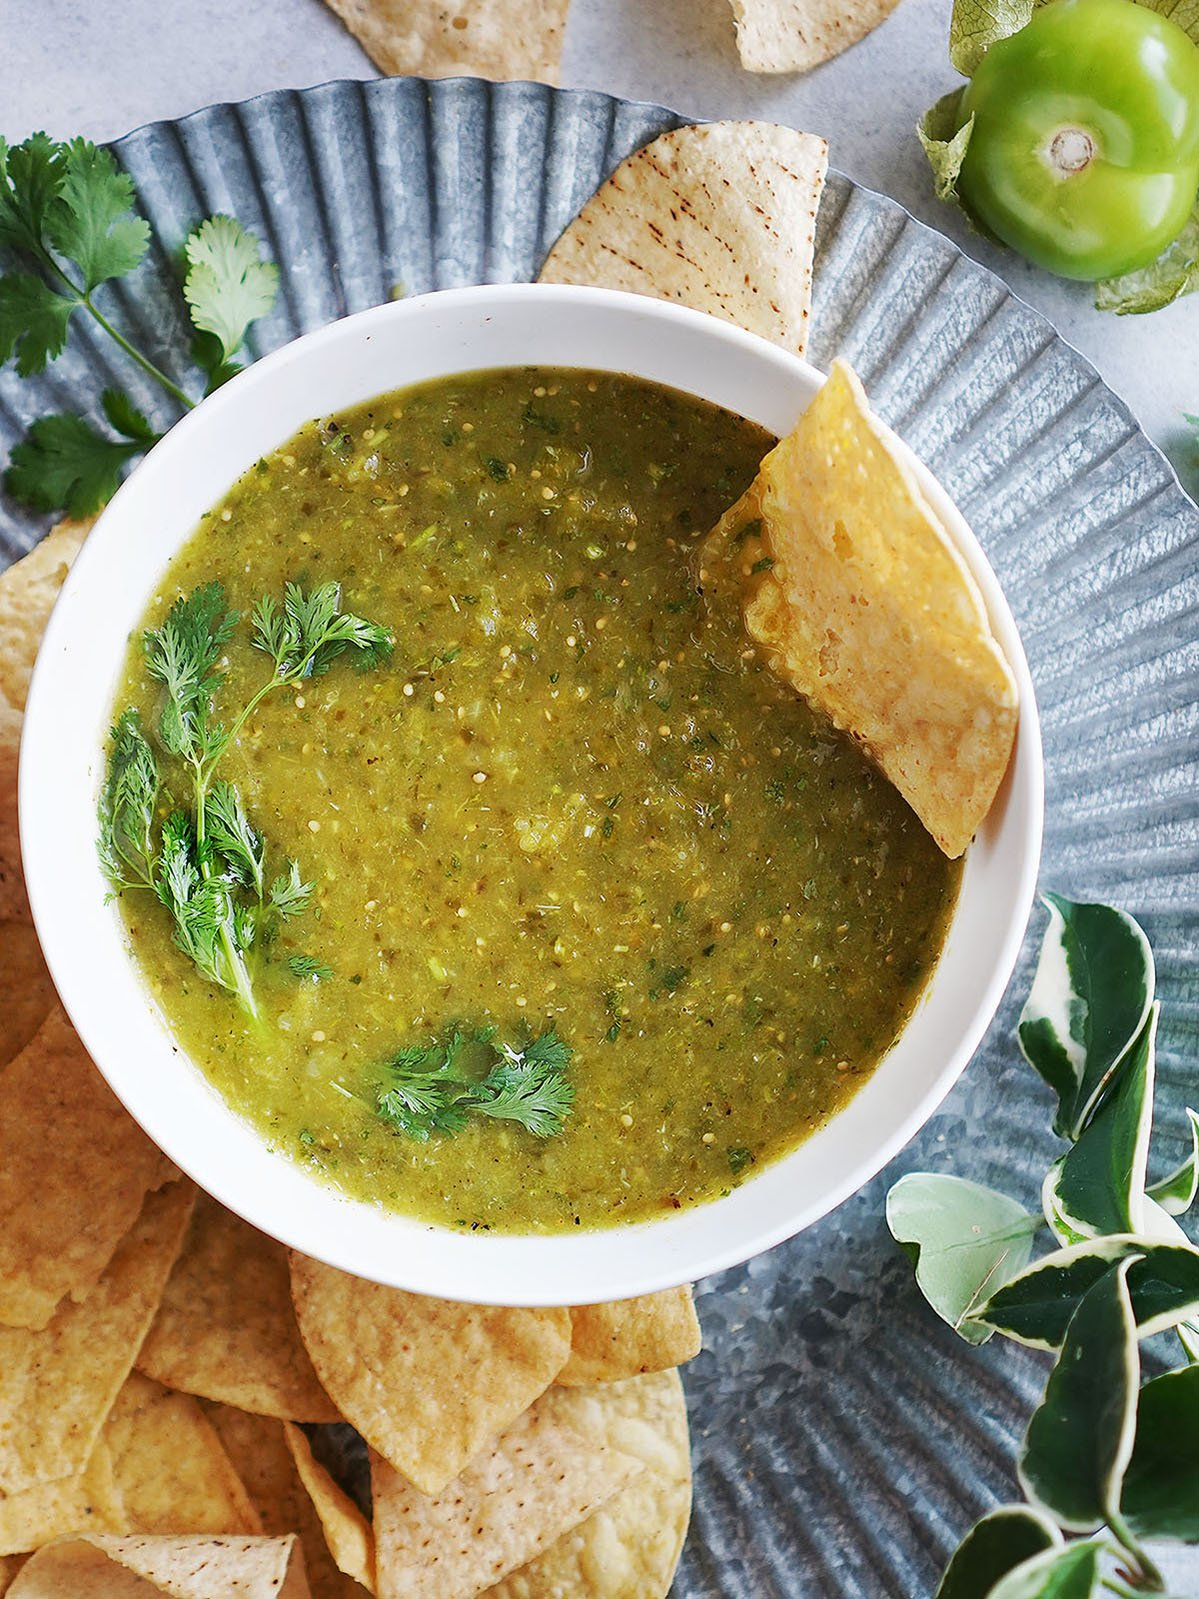 green salsa in a white bowl with tortilla chips on the side